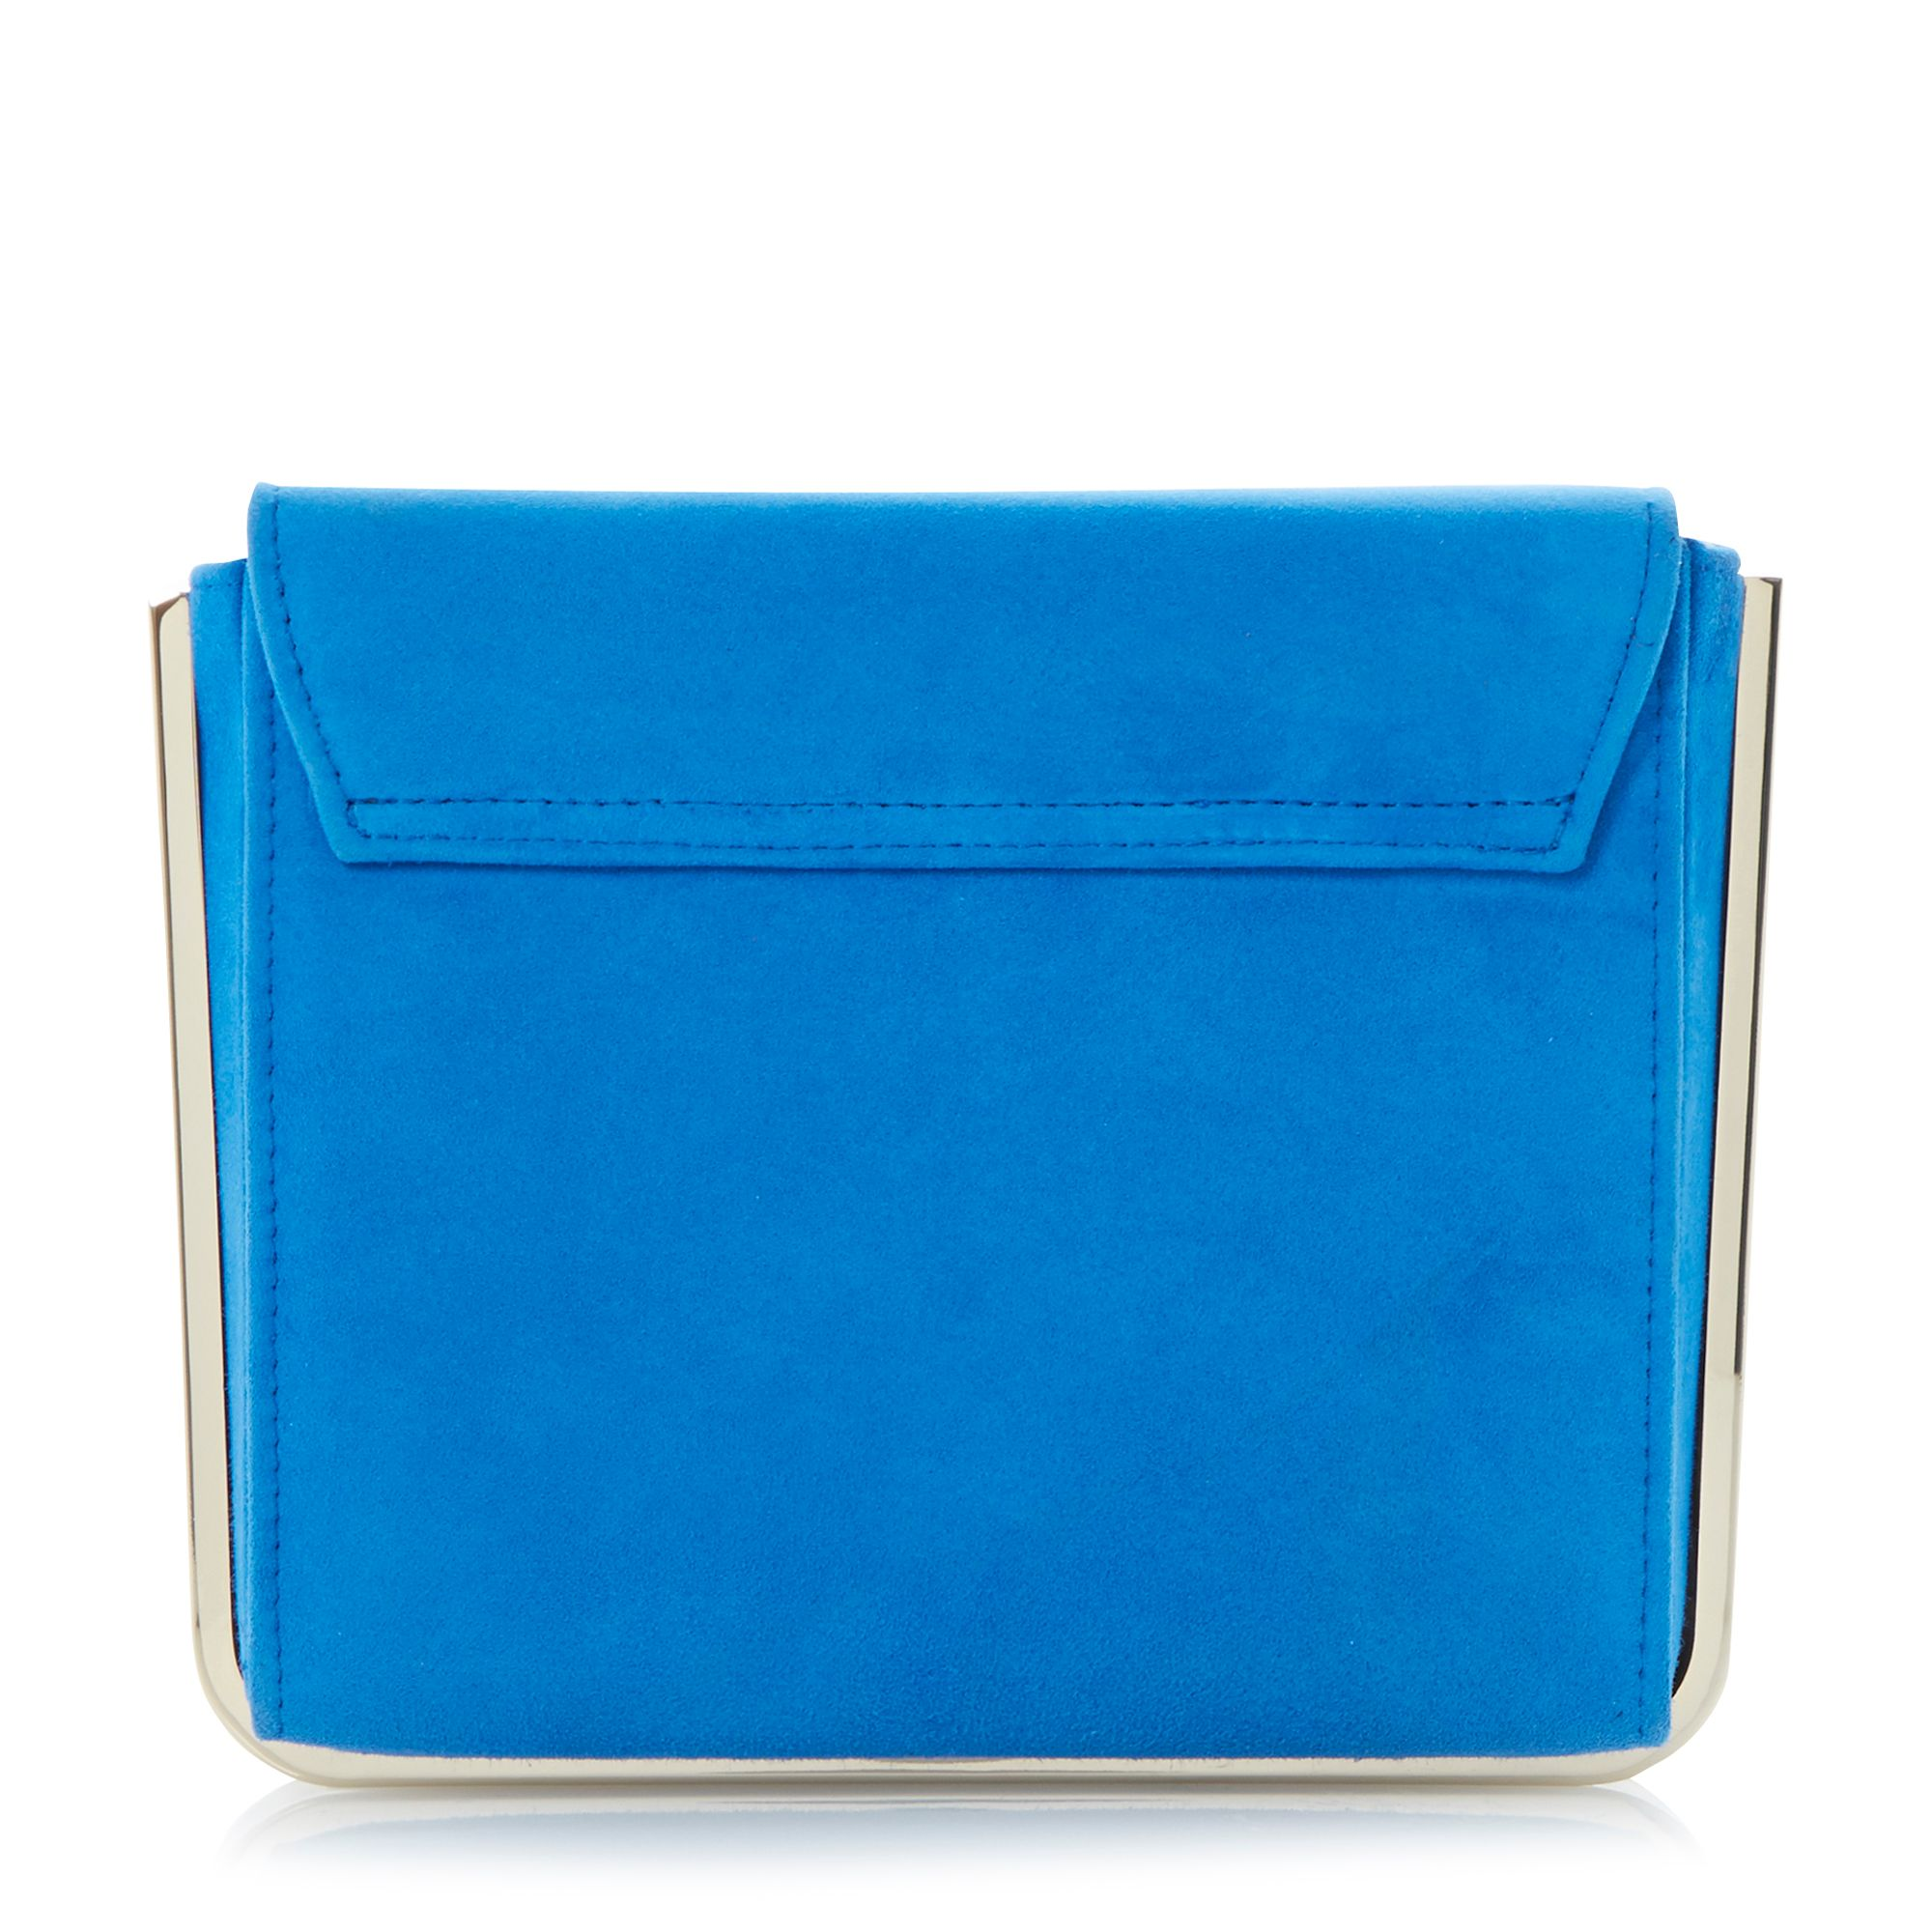 Blaze suede metal frame clutch bag